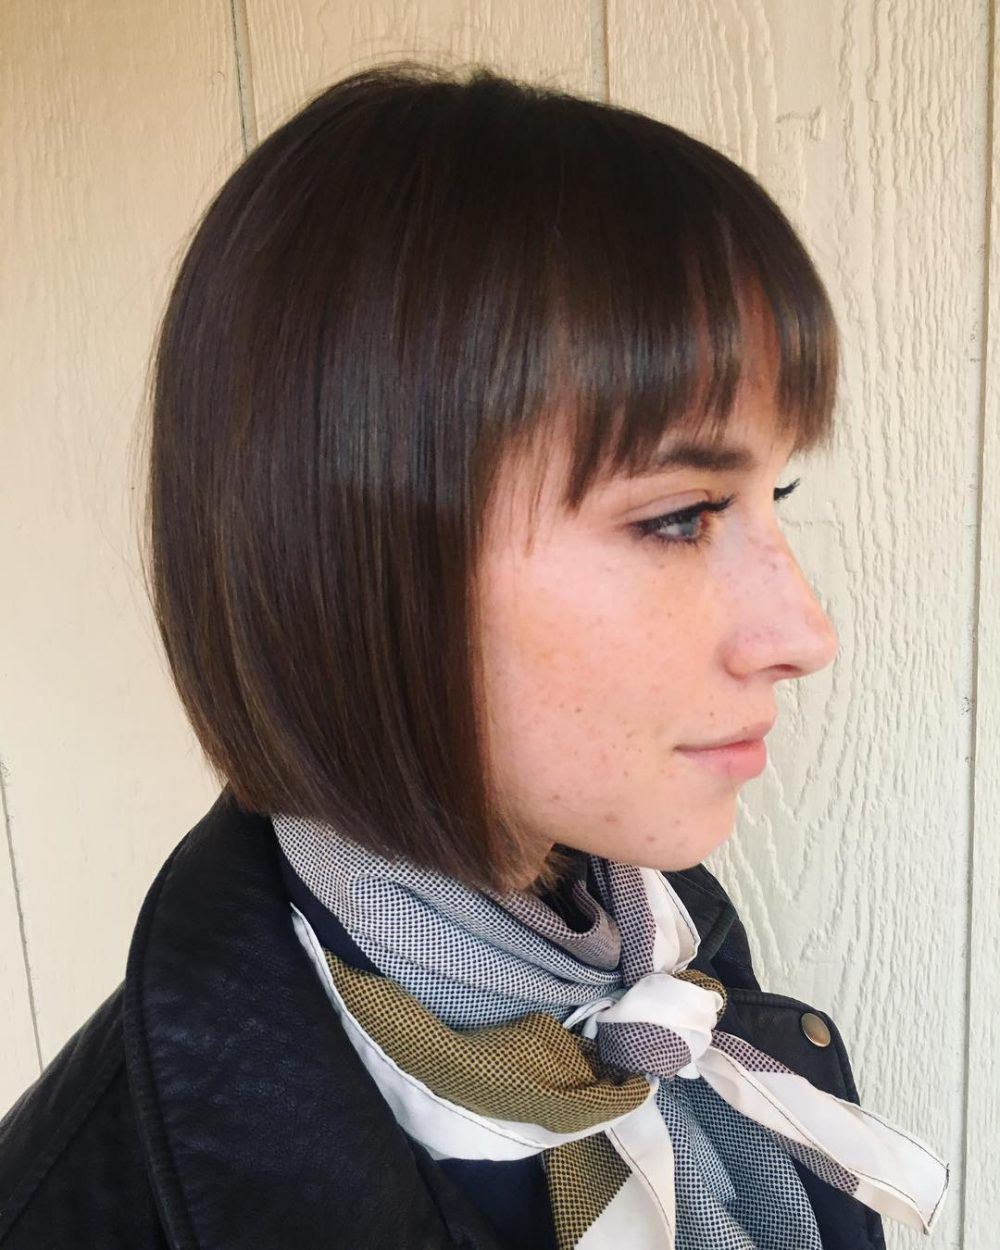 blunt-cut -with-textured-bangs.jpg